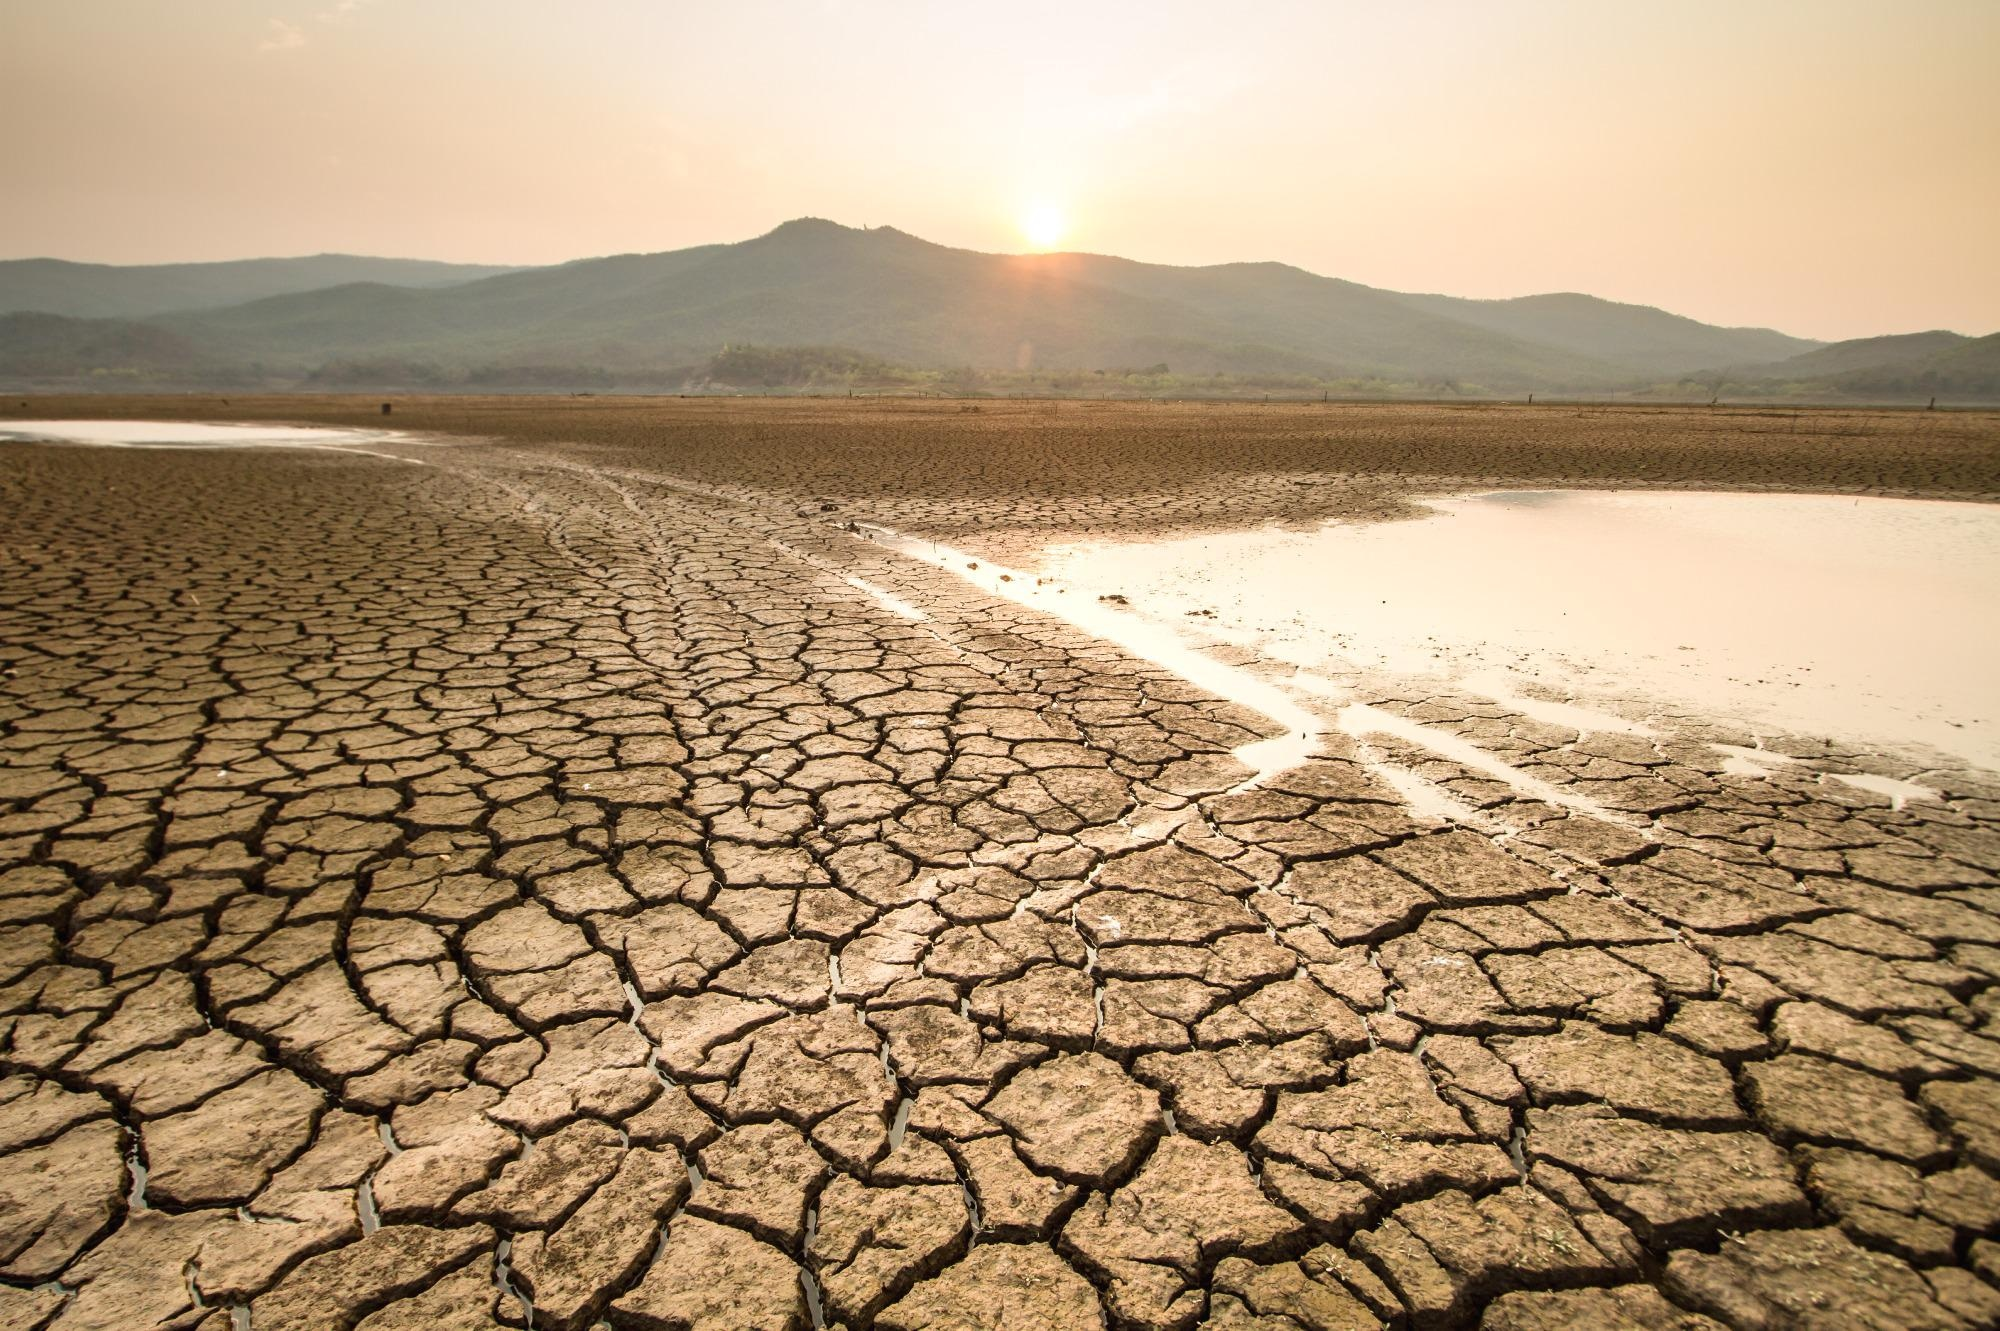 Effects of Climate Change are Disproportionally Affecting Future Generations.